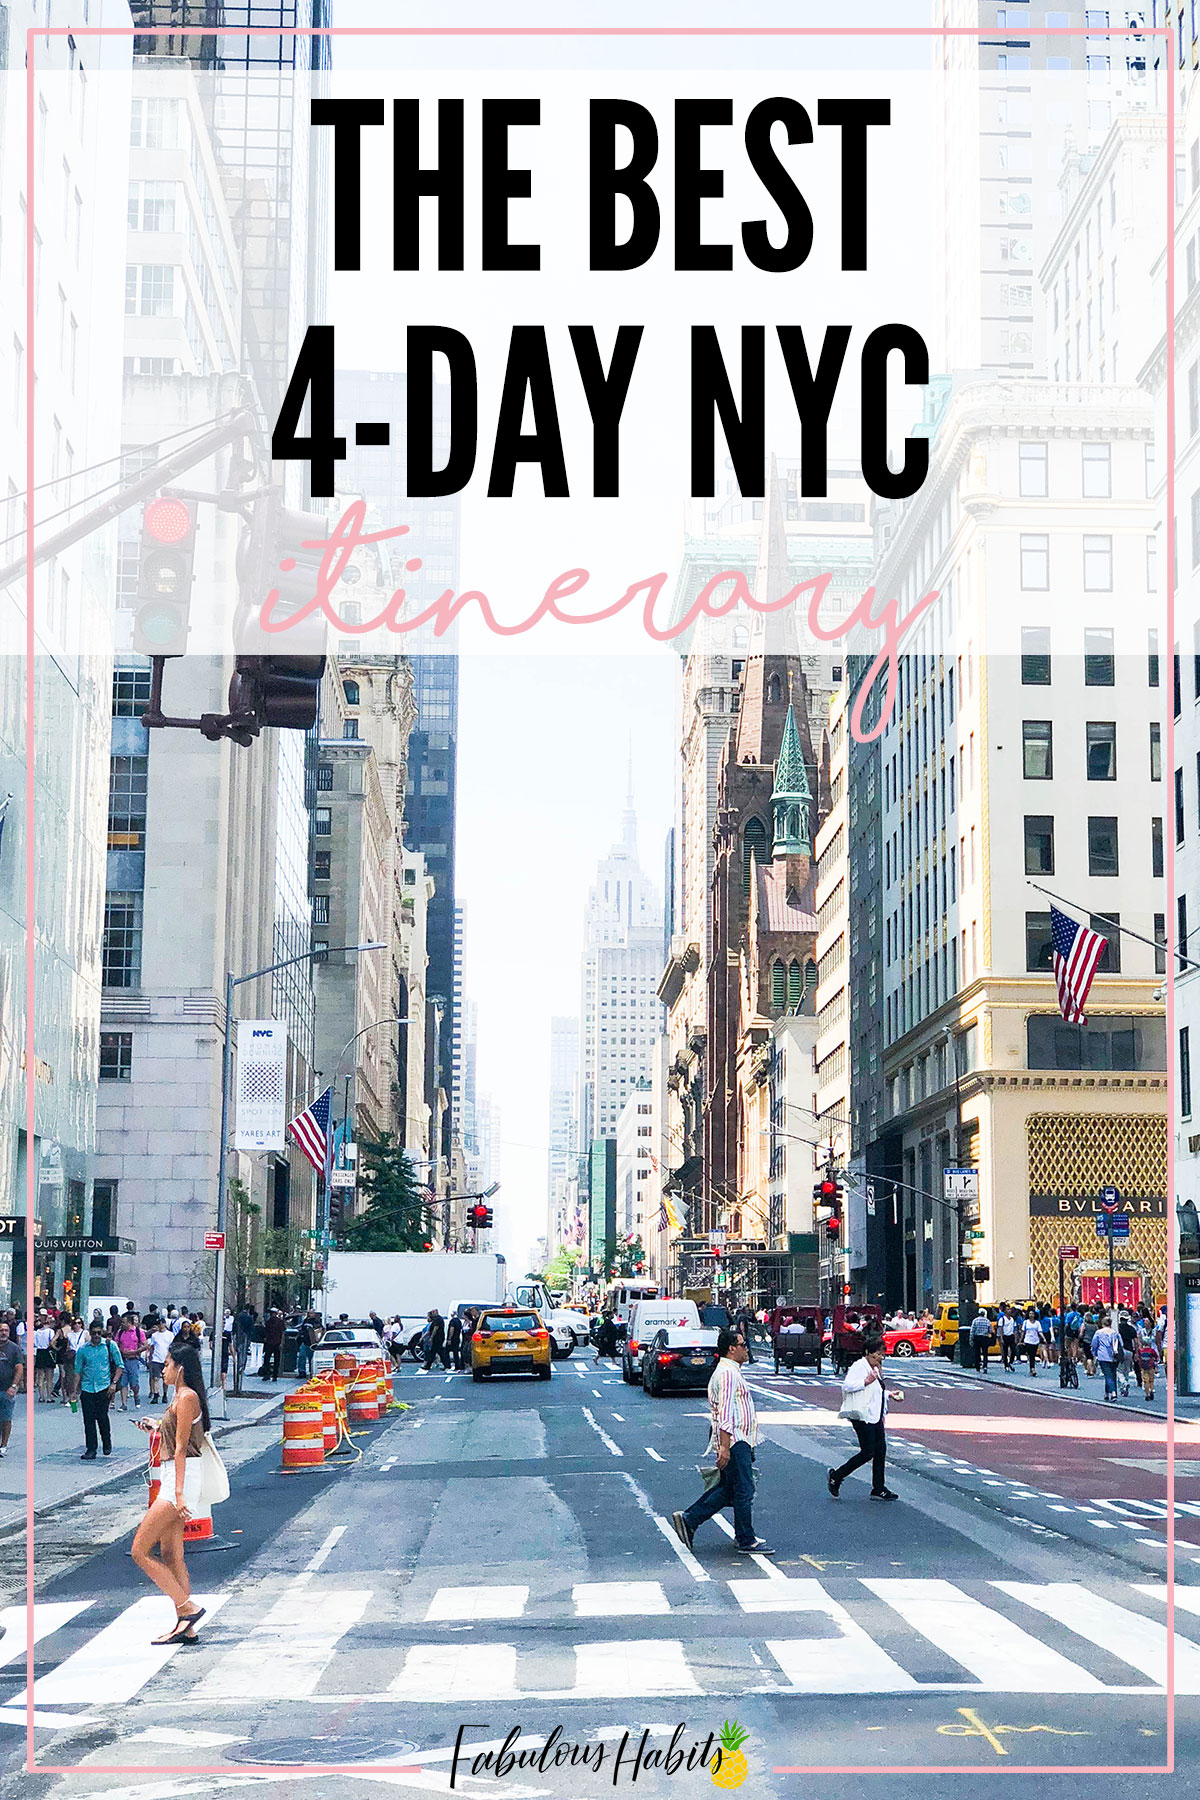 Here's how to spend 4 perfect days in NYC. This is our family's New York City Itinerary - enjoy and safe travels! #NYCvacation